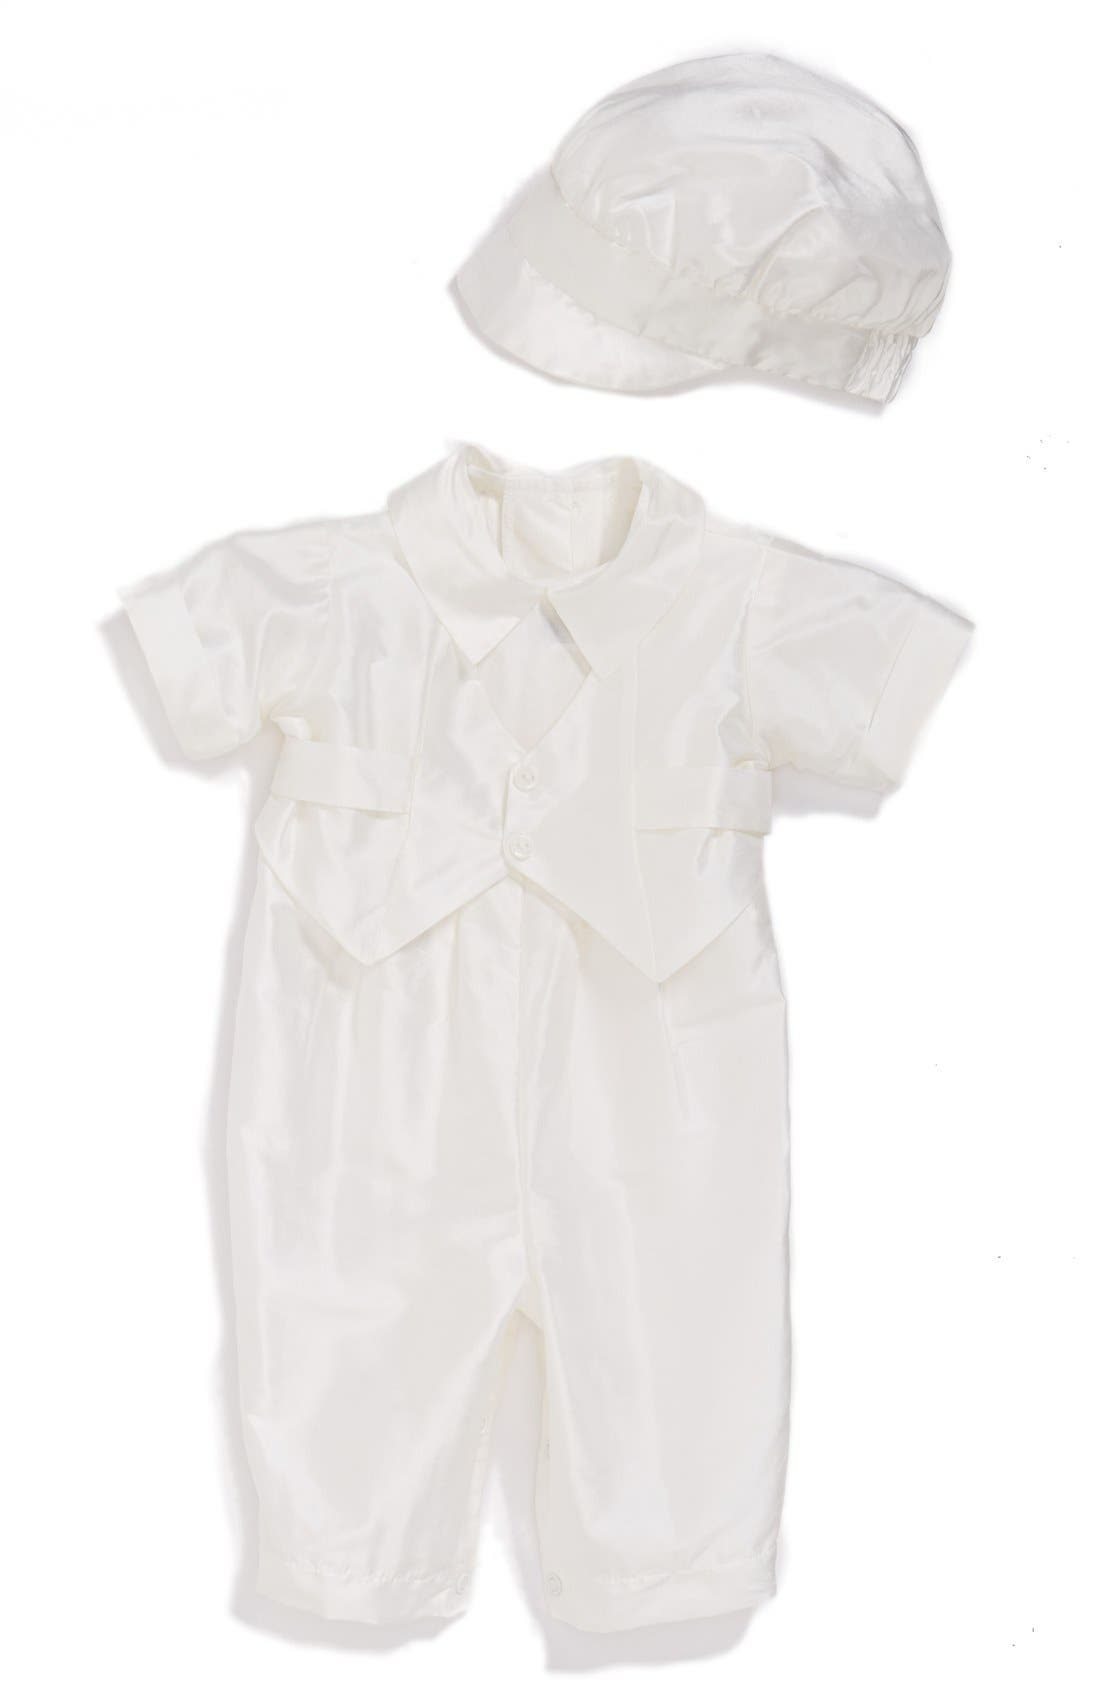 Alternate Image 1 Selected - Little Things Mean a Lot Silk Dupioni Romper and Hat Set (Baby)